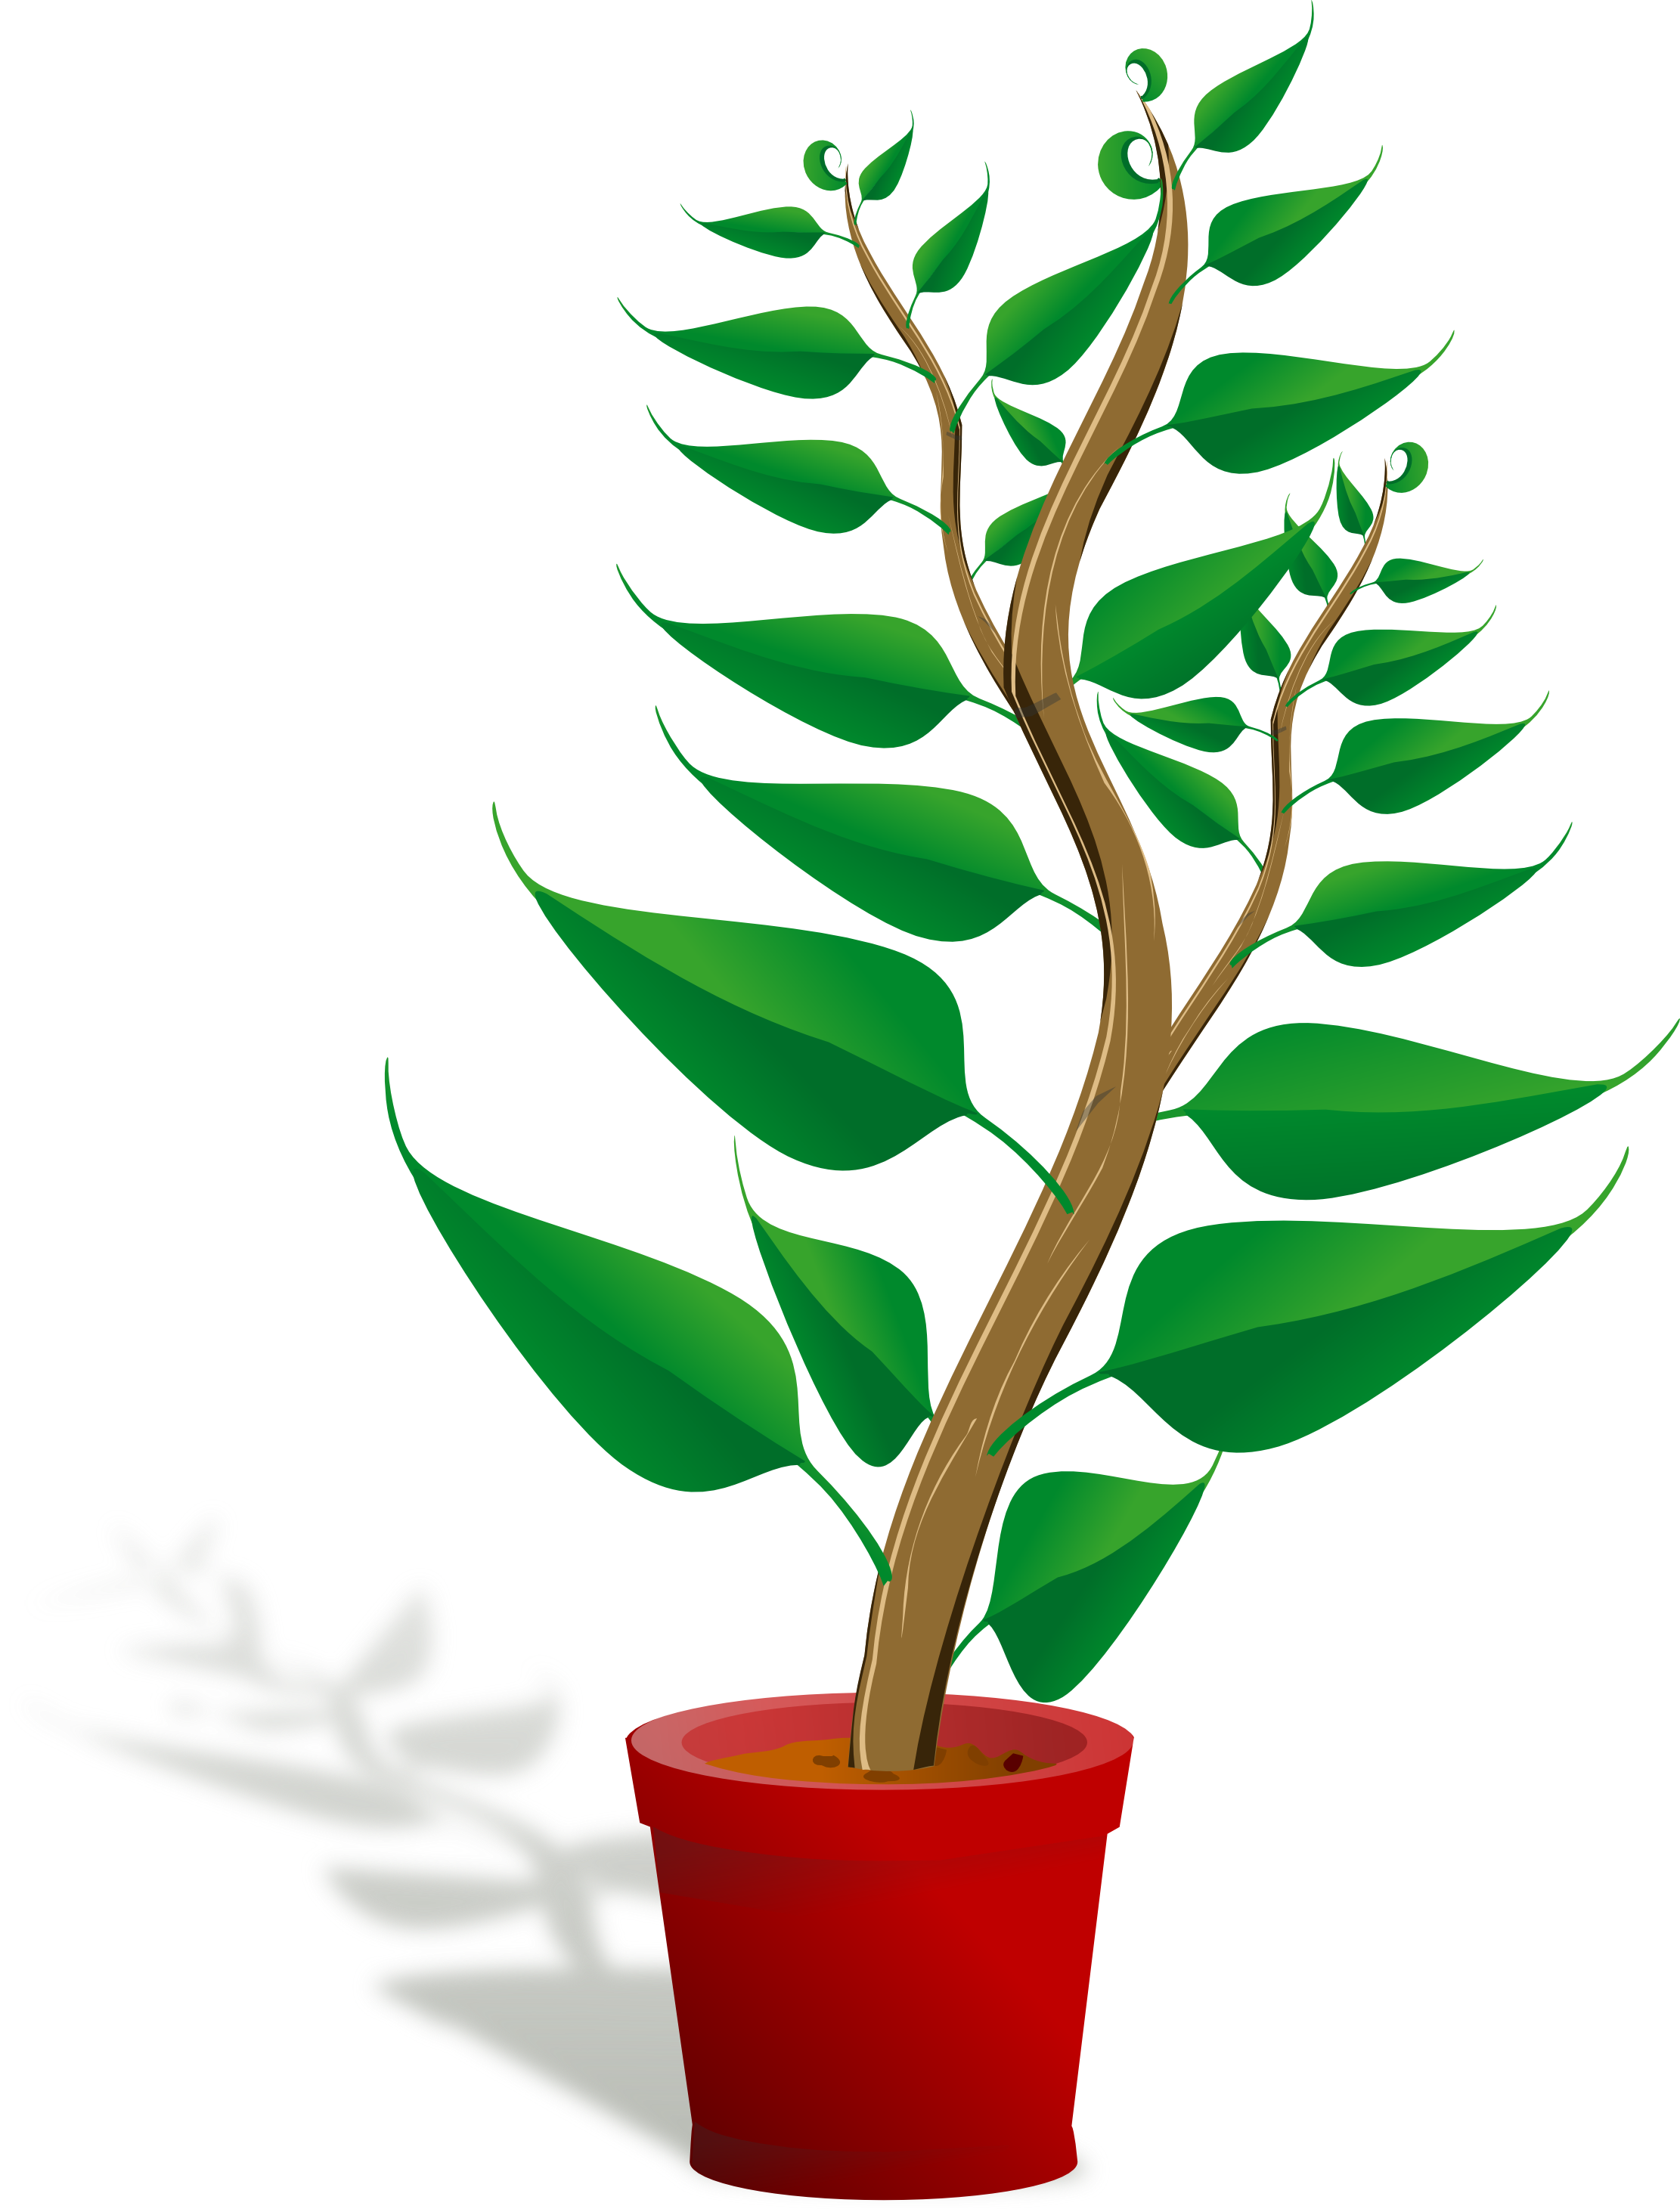 Plant clipart images graphic library stock Plants Clip Art Free | Clipart Panda - Free Clipart Images graphic library stock